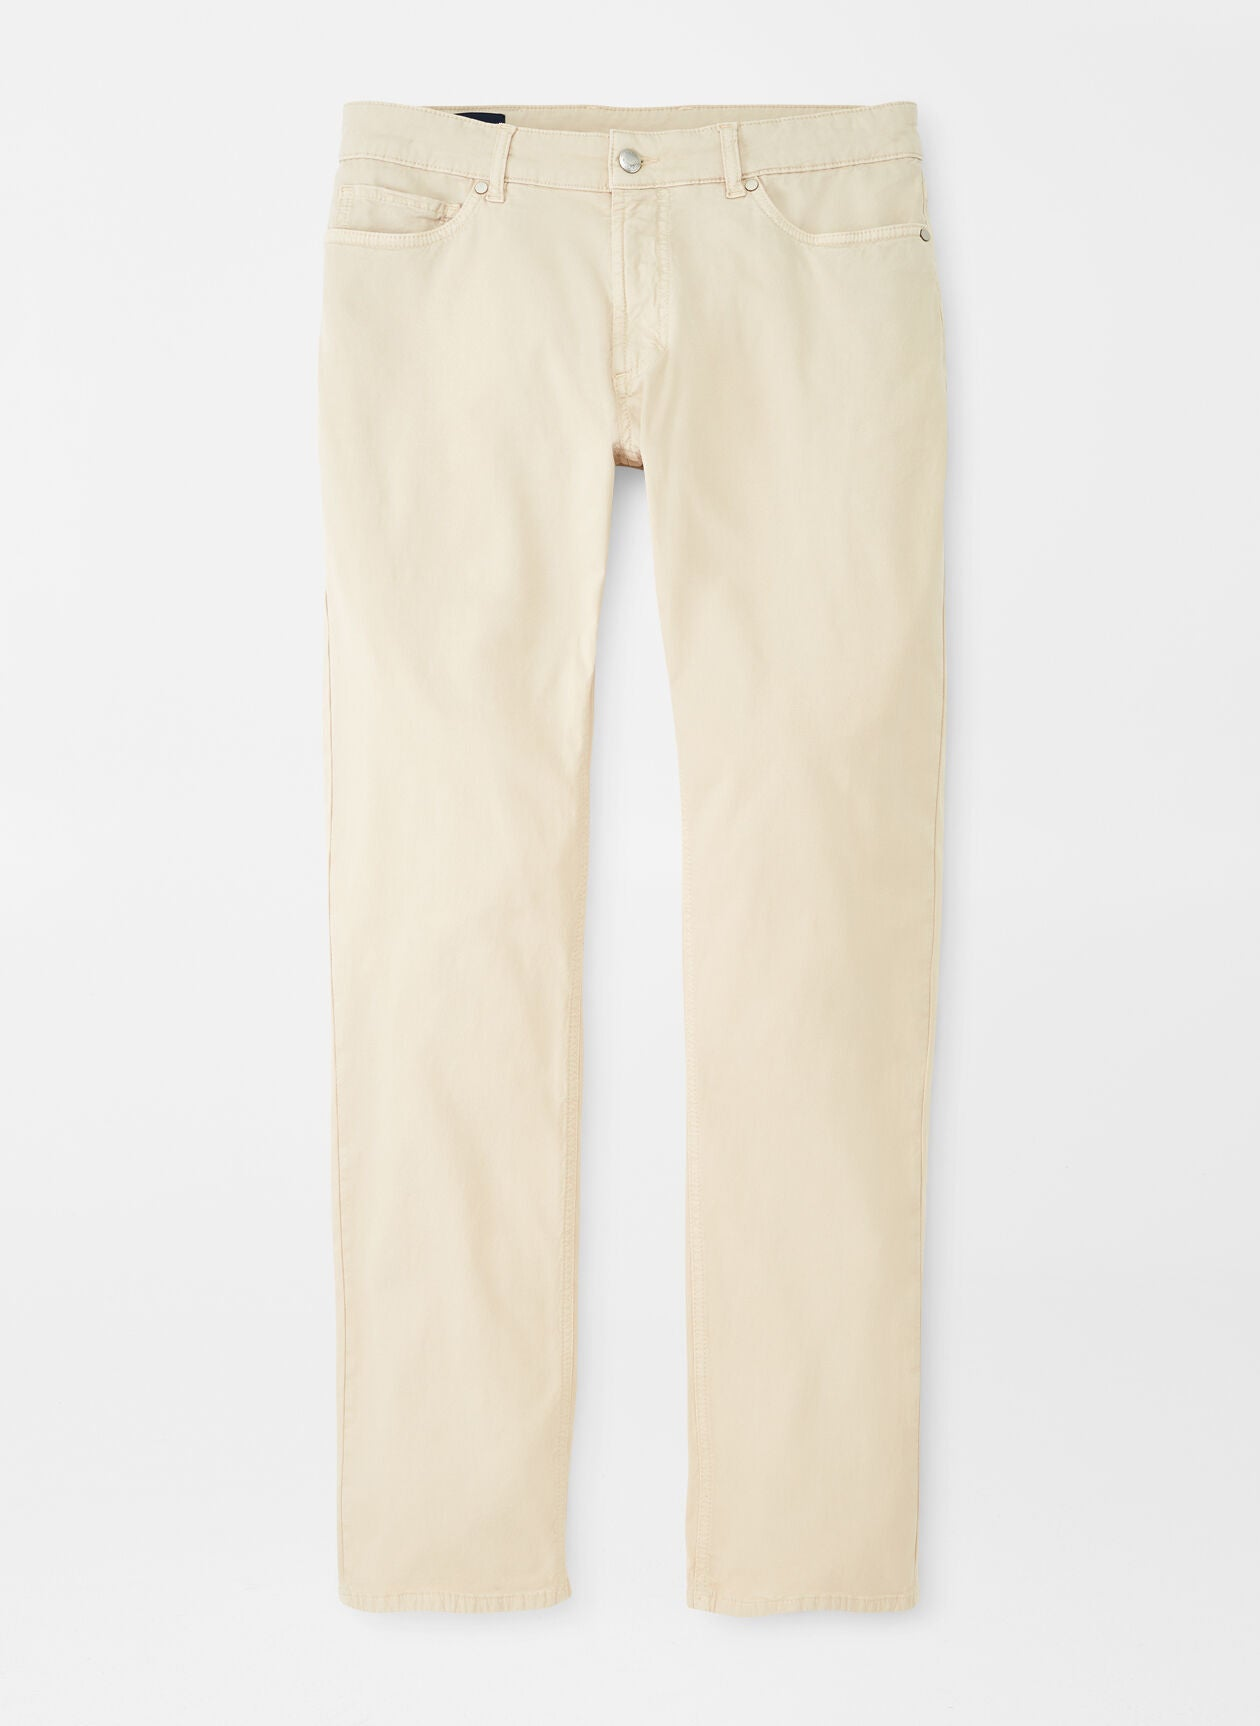 PETER MILLAR FIVE POCKET TROUSER - STONE